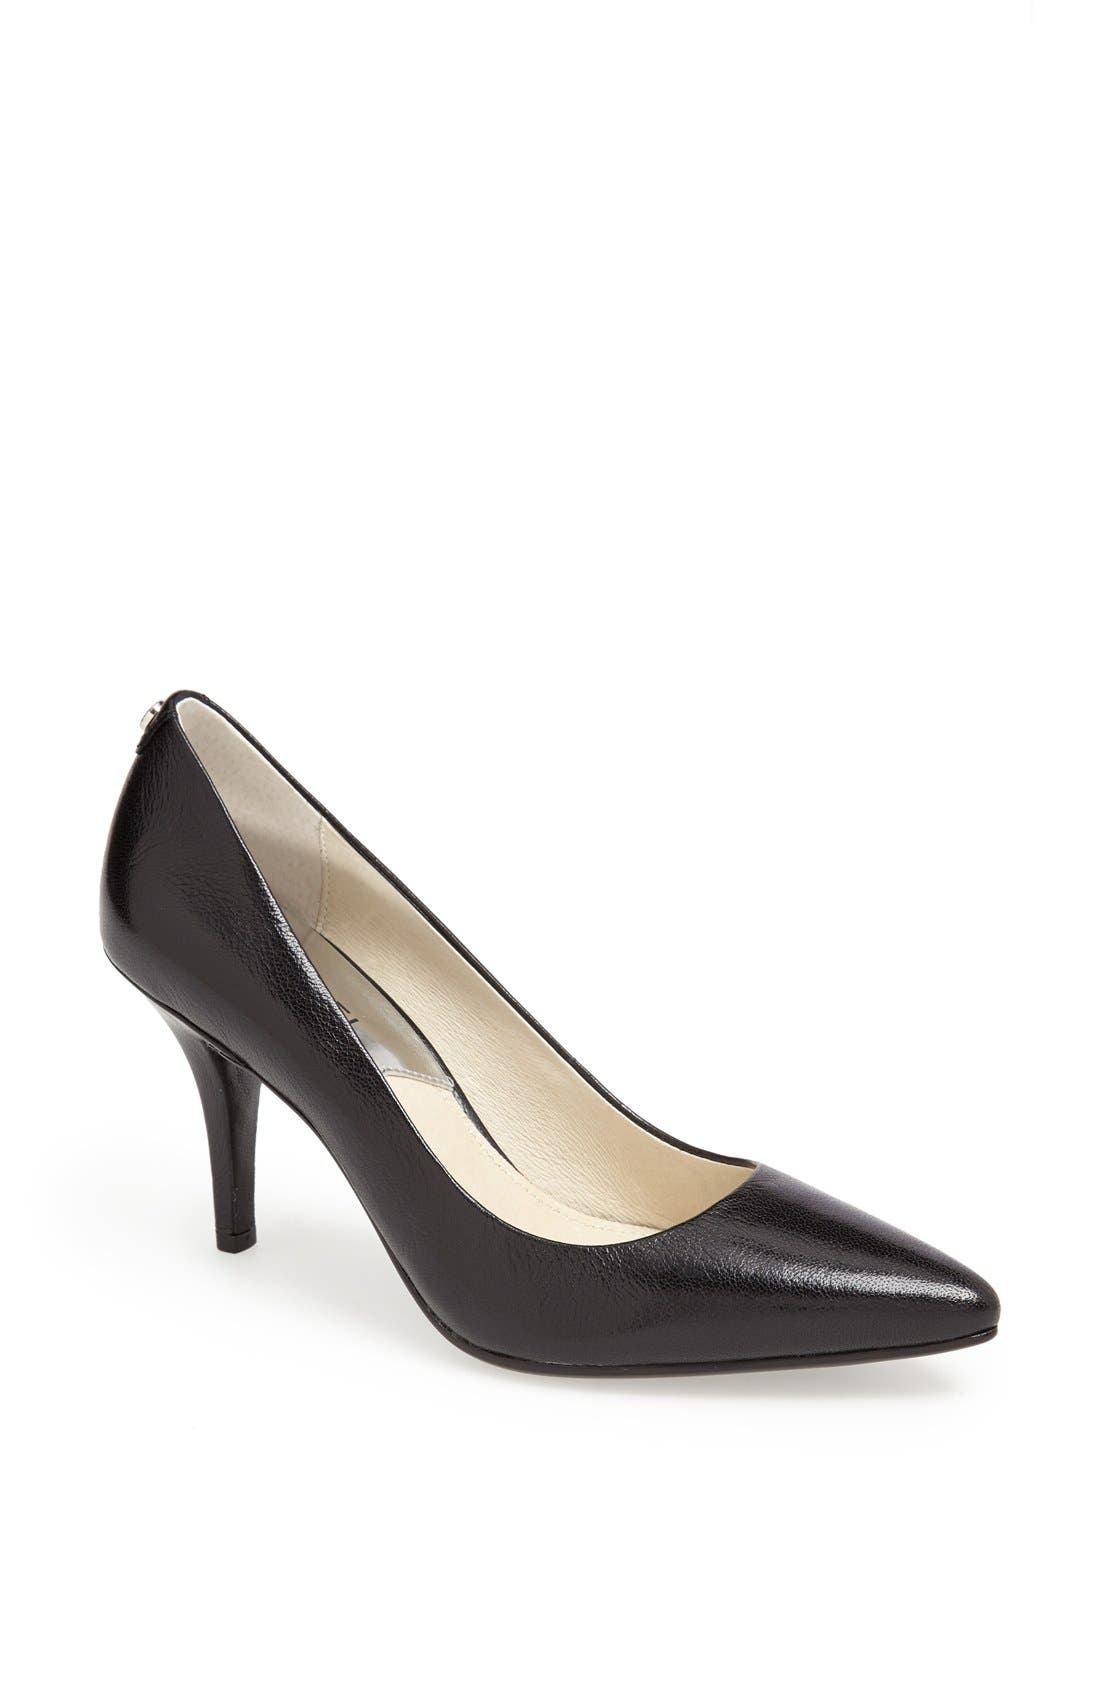 Alternate Image 1 Selected - MICHAEL Michael Kors 'Flex' Pump (Women)